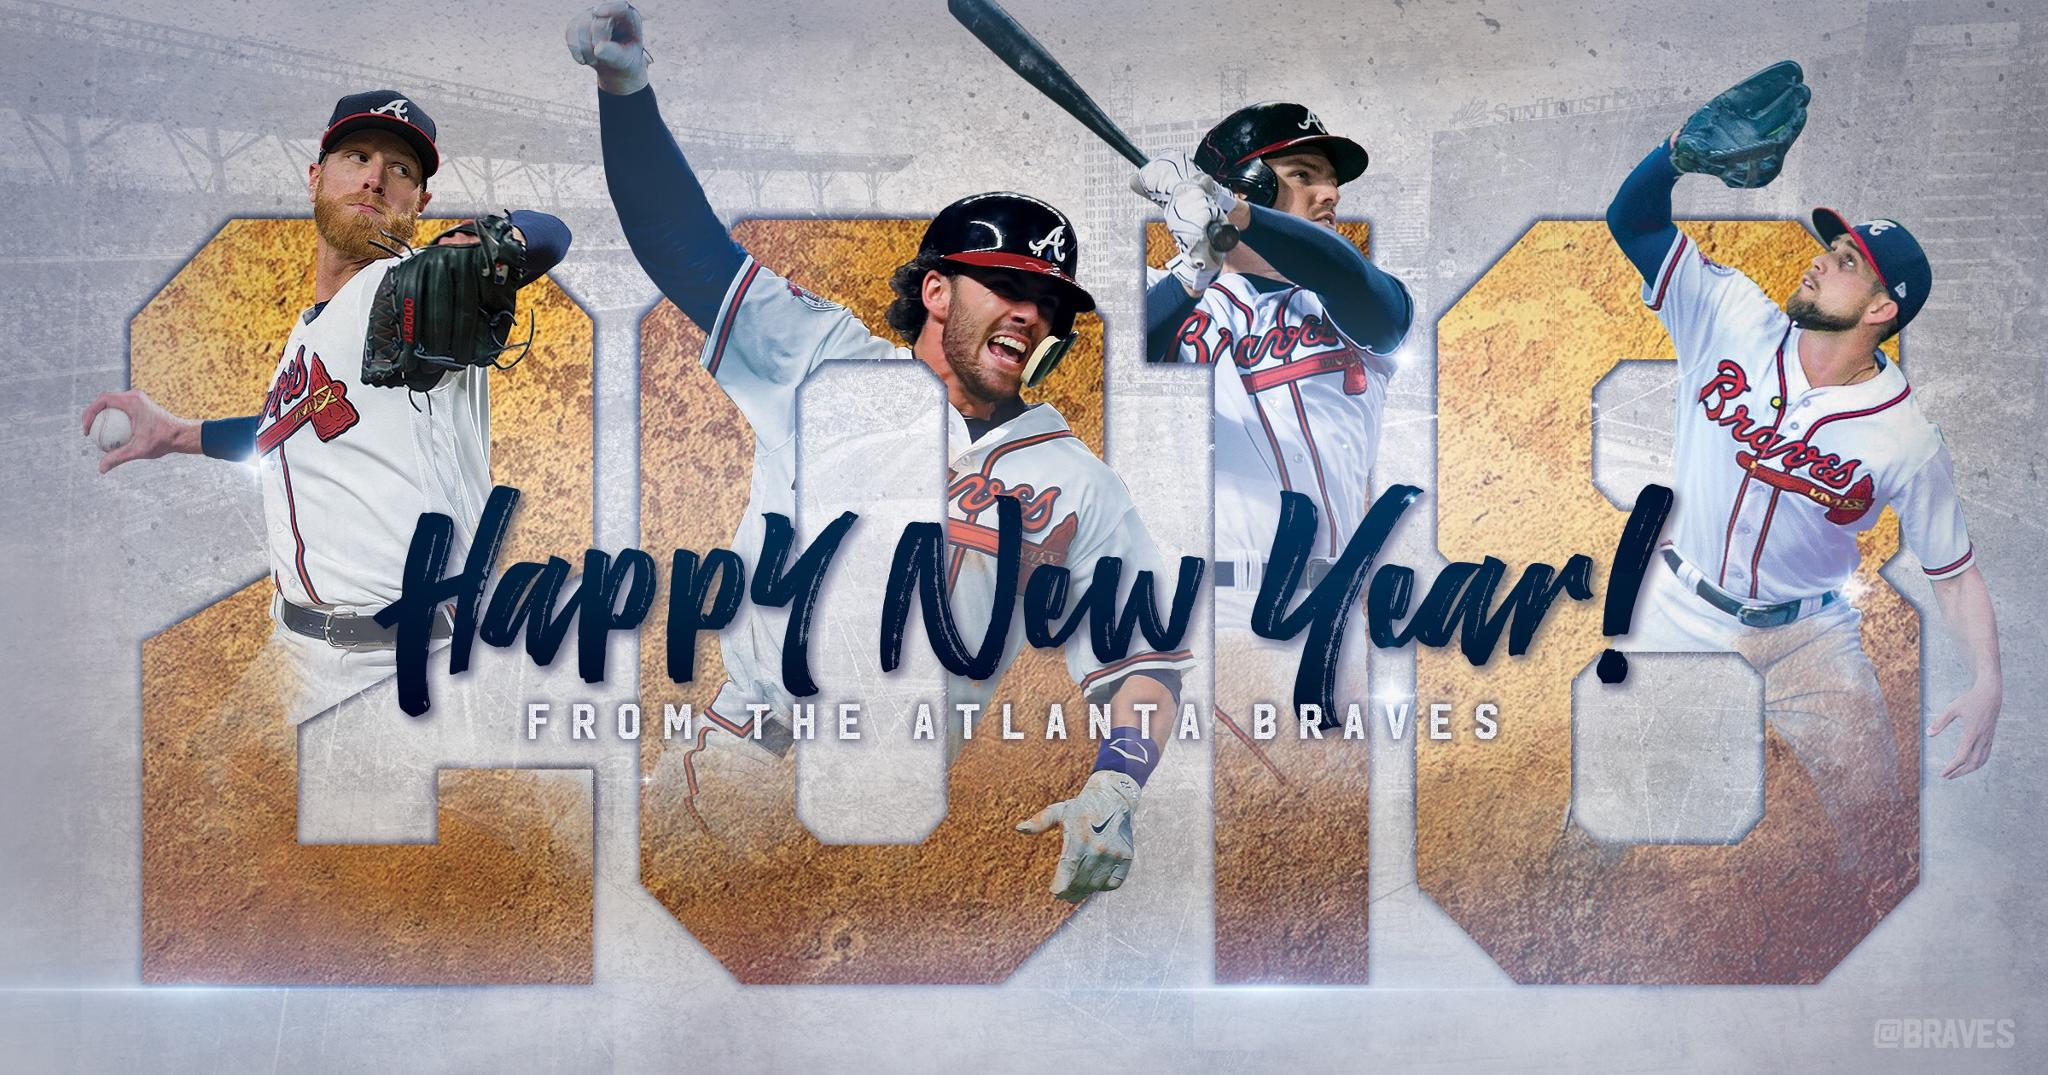 #HappyNewYear Braves Country! https://t.co/kk5J810Pmm